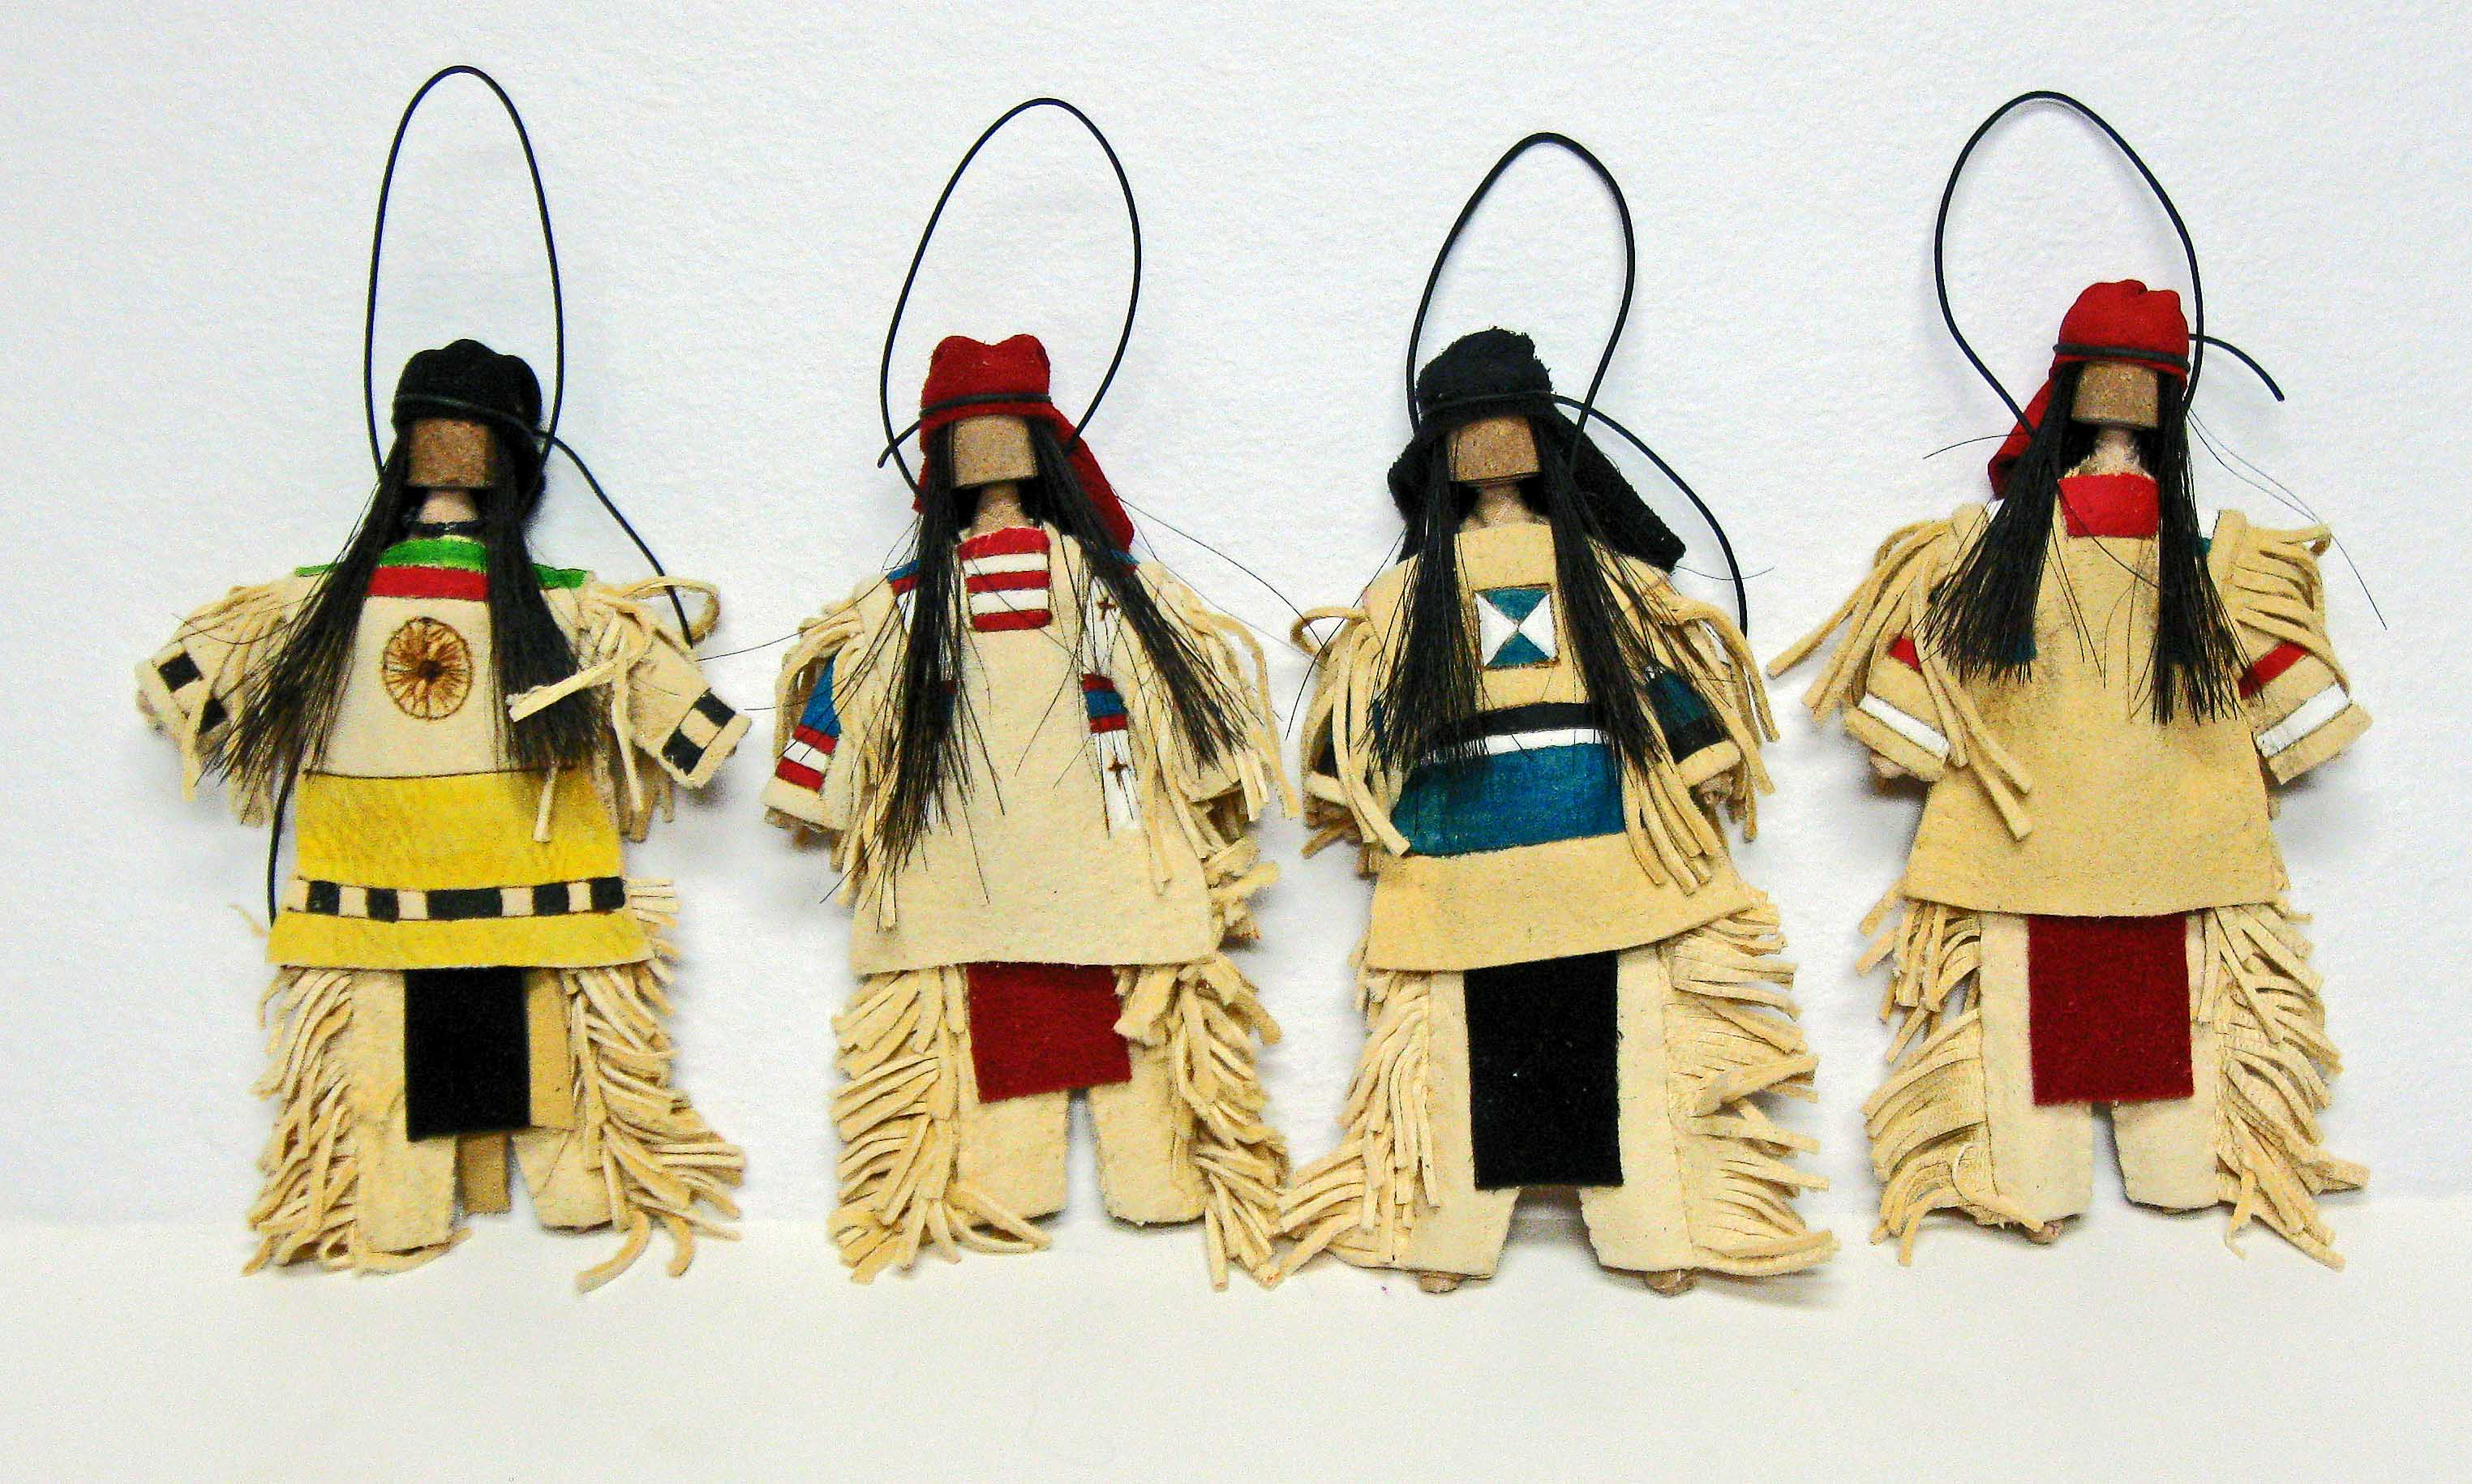 Native american ornaments - Imitation Brain Tan Leather Has Been Painted And Handsewn To Create One Of A Kind Ornaments Hair Is Out Of Horse Hair And Wrapped With Leather Wraps